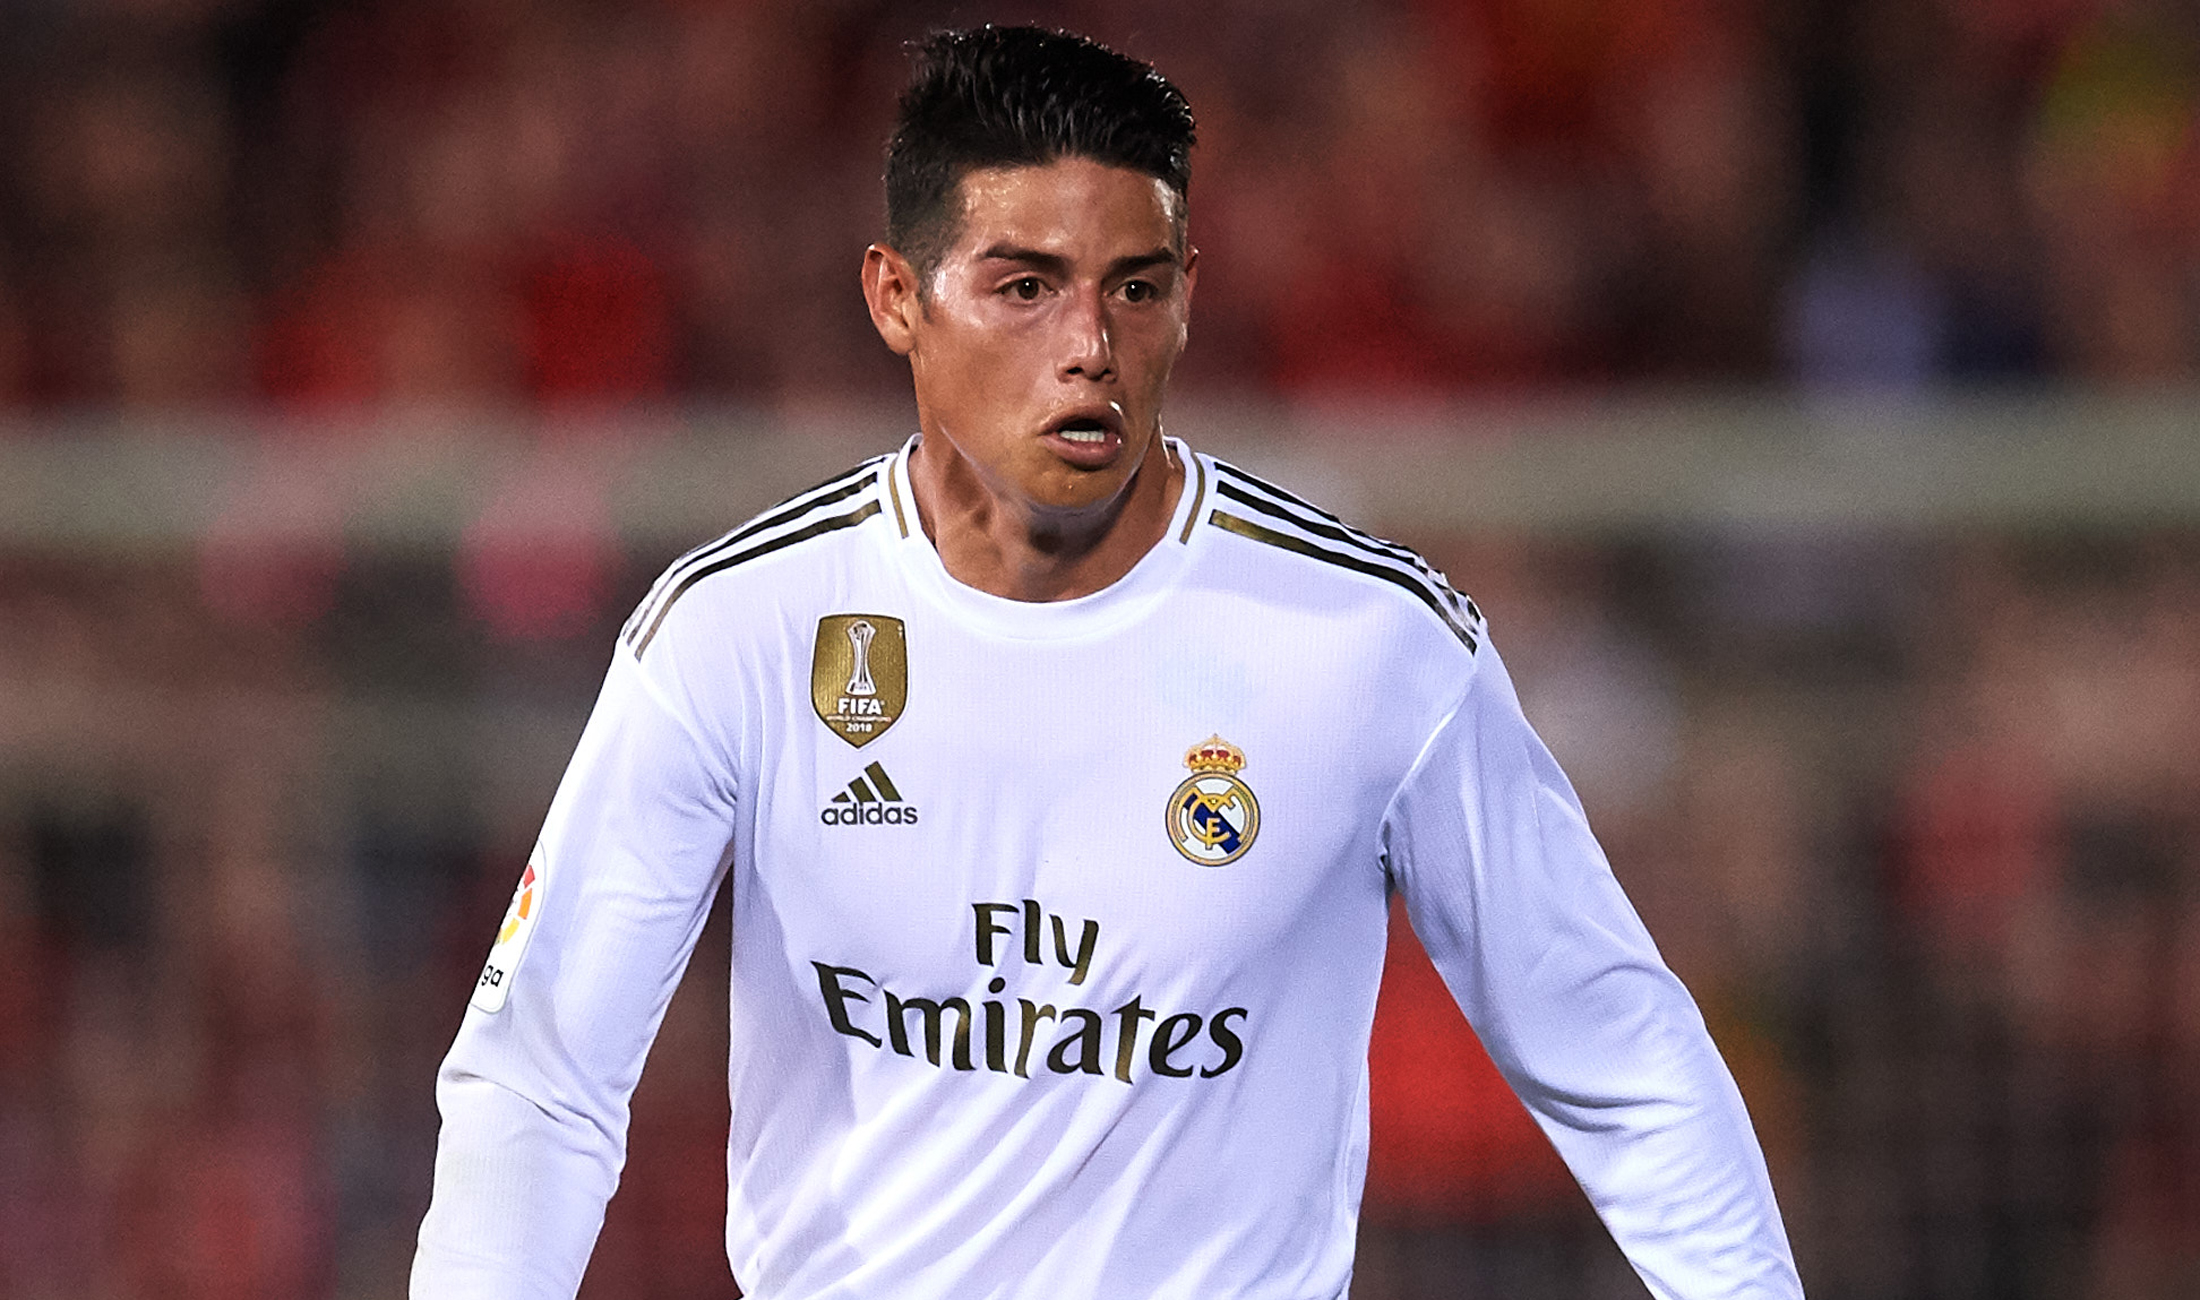 Real Madrid midfielder James suffers knee injury in Colombia training